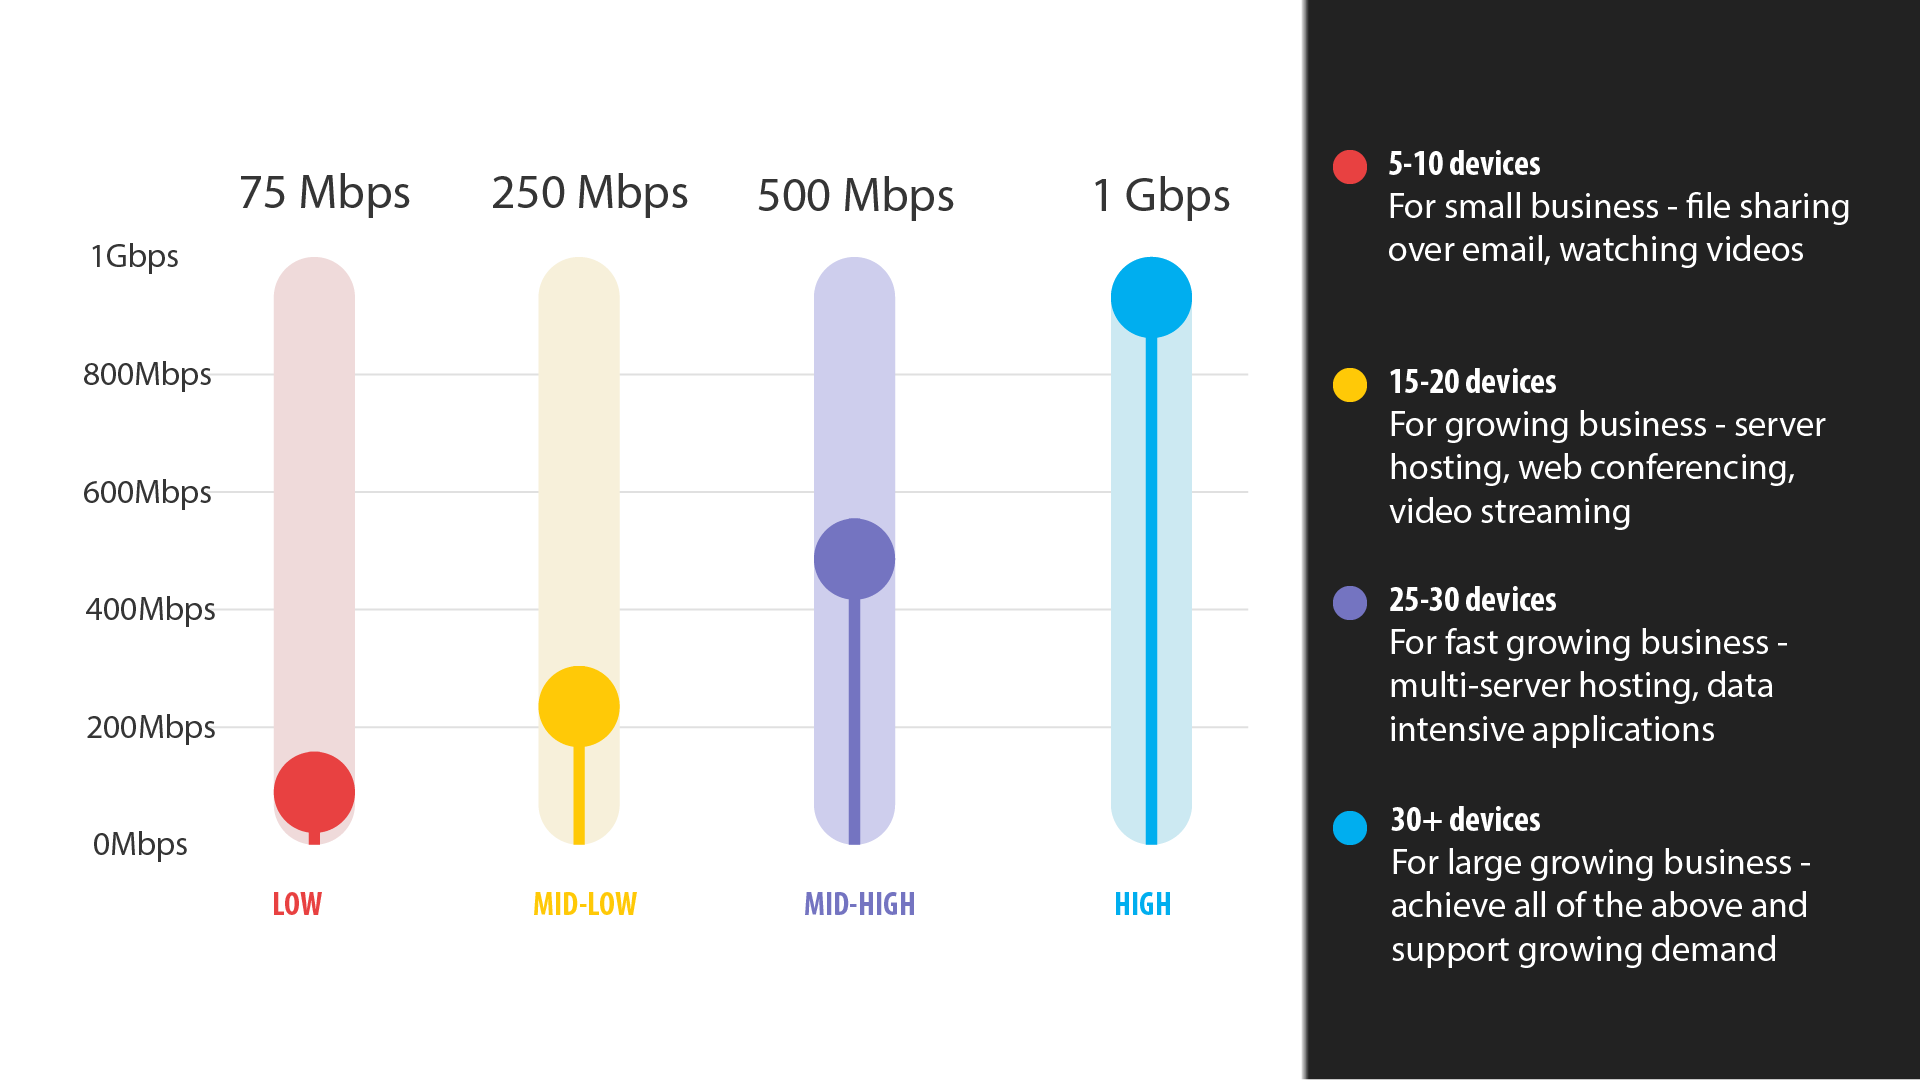 Business Internet Speed Requirements Chart -- Data: 75 Mbps is ideal for 5-10 devices For small business - file sharing over email, watching videos. 250 Mbps is ideal for 15-20 devices For growing business - server hosting, web conferencing, video streaming. 500 Mbps is ideal for 25-30 devices For fast growing business - multi-server hosting, data intensive applications. 1 Gbps is ideal for 30+ devices For large growing business - achieve all of the above and support growing demand.